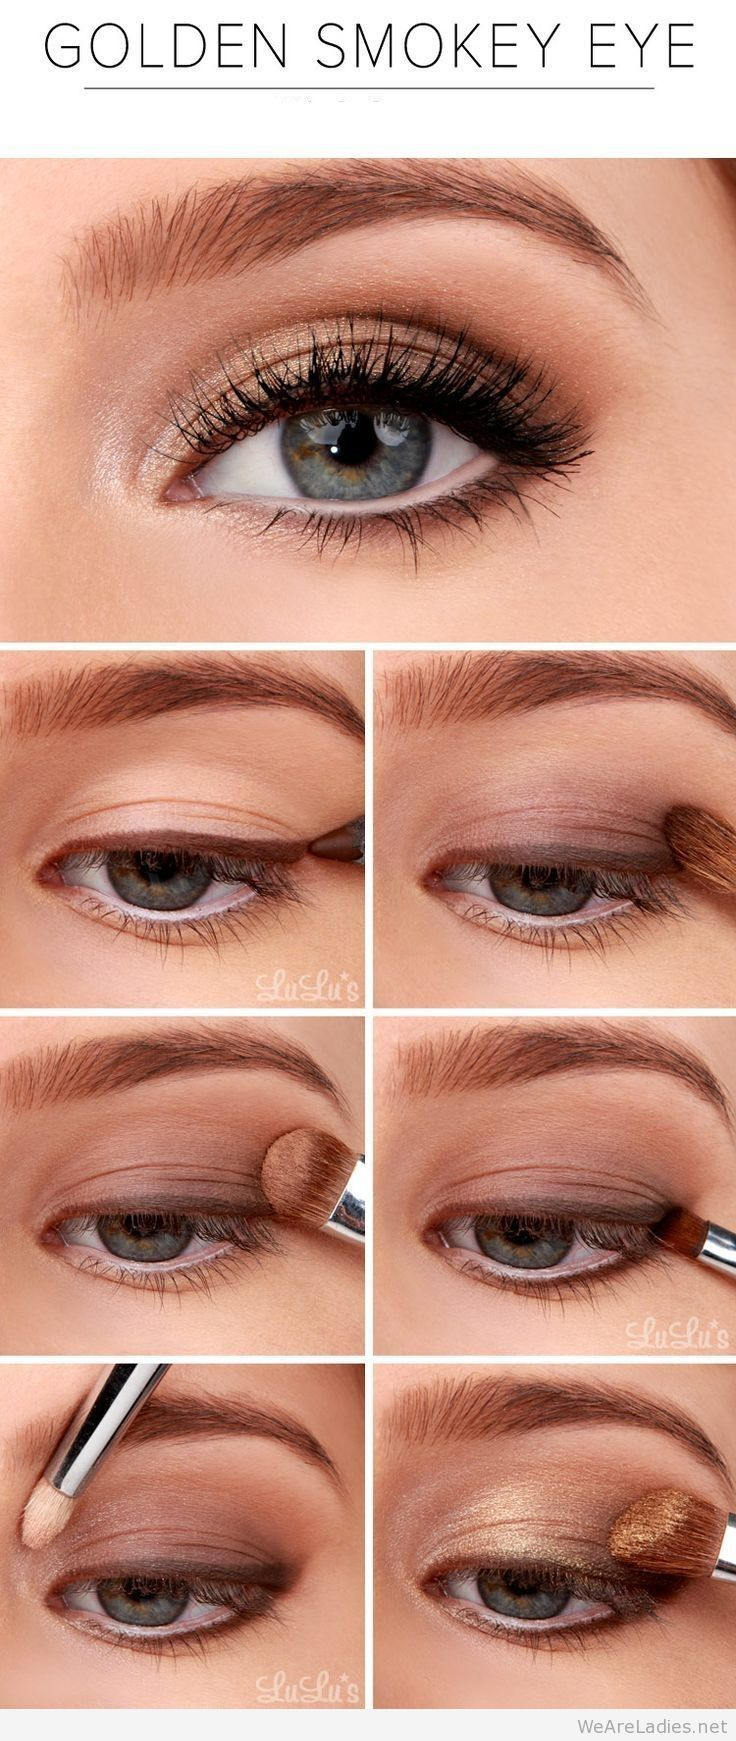 Easy Golden smokey eyes makeup tutorial, the easy way